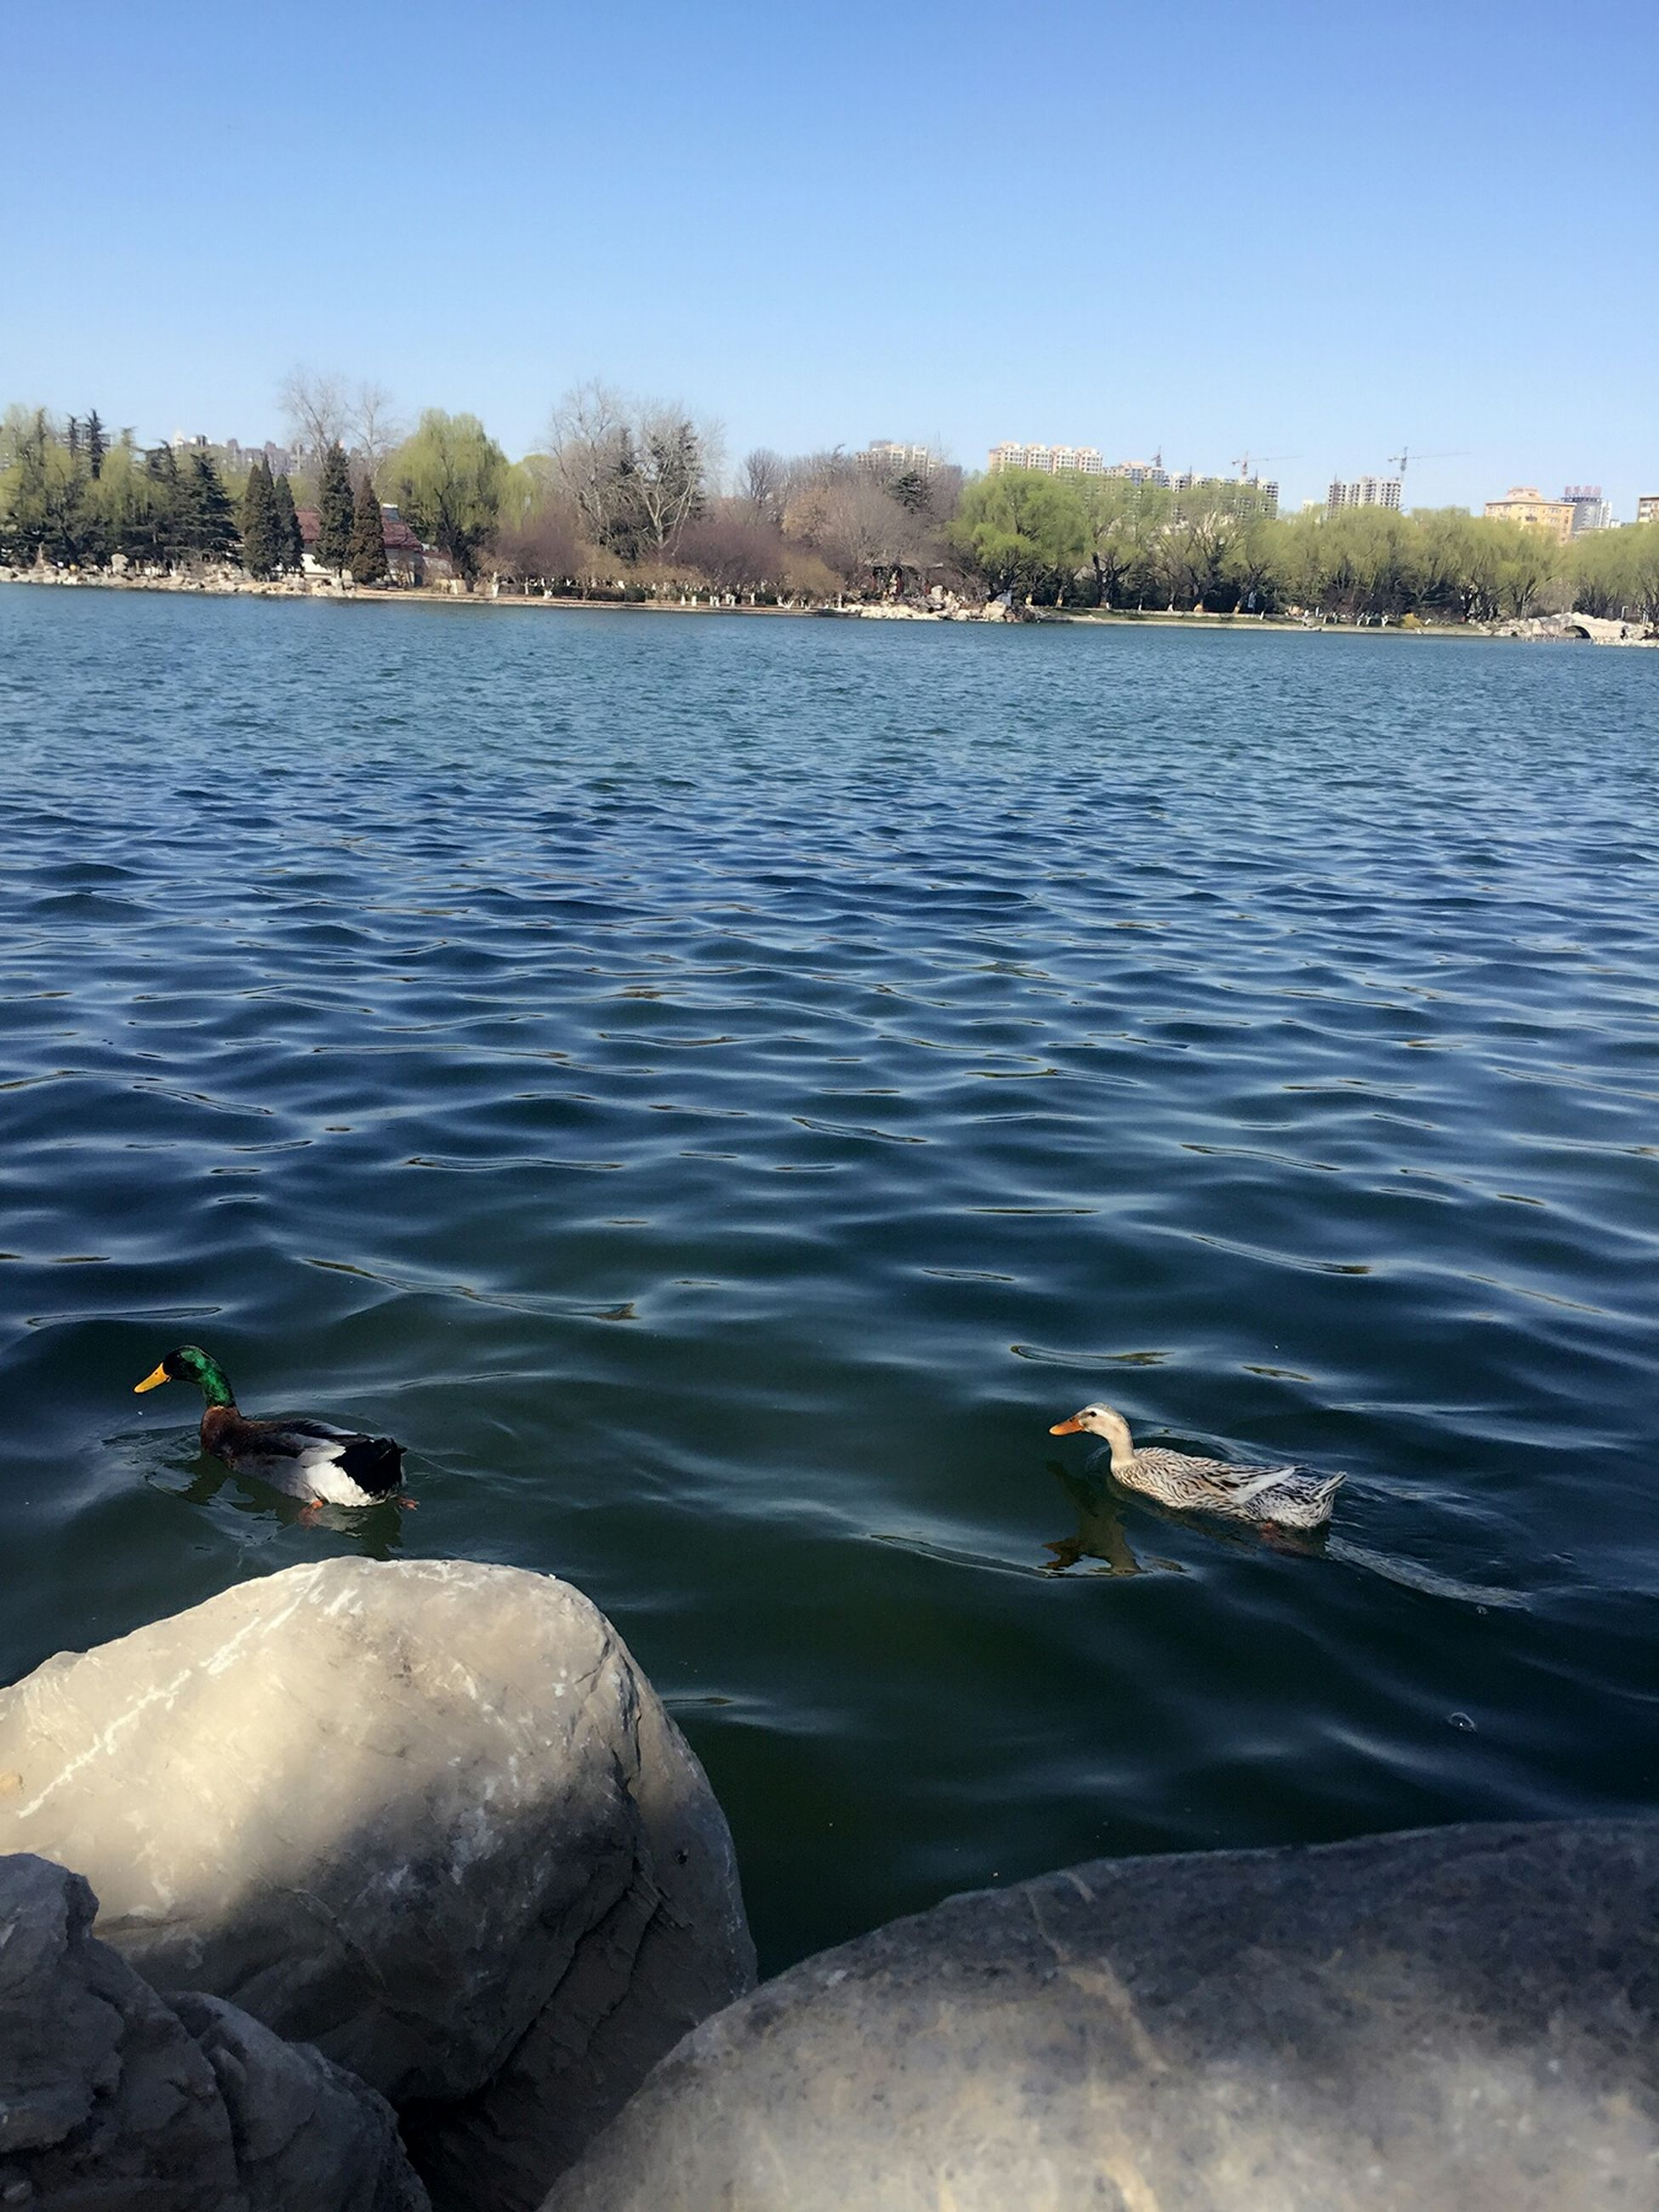 water, bird, lake, wildlife, animal themes, animals in the wild, clear sky, swimming, rippled, duck, tranquility, reflection, tranquil scene, nature, tree, blue, beauty in nature, scenics, rock - object, river